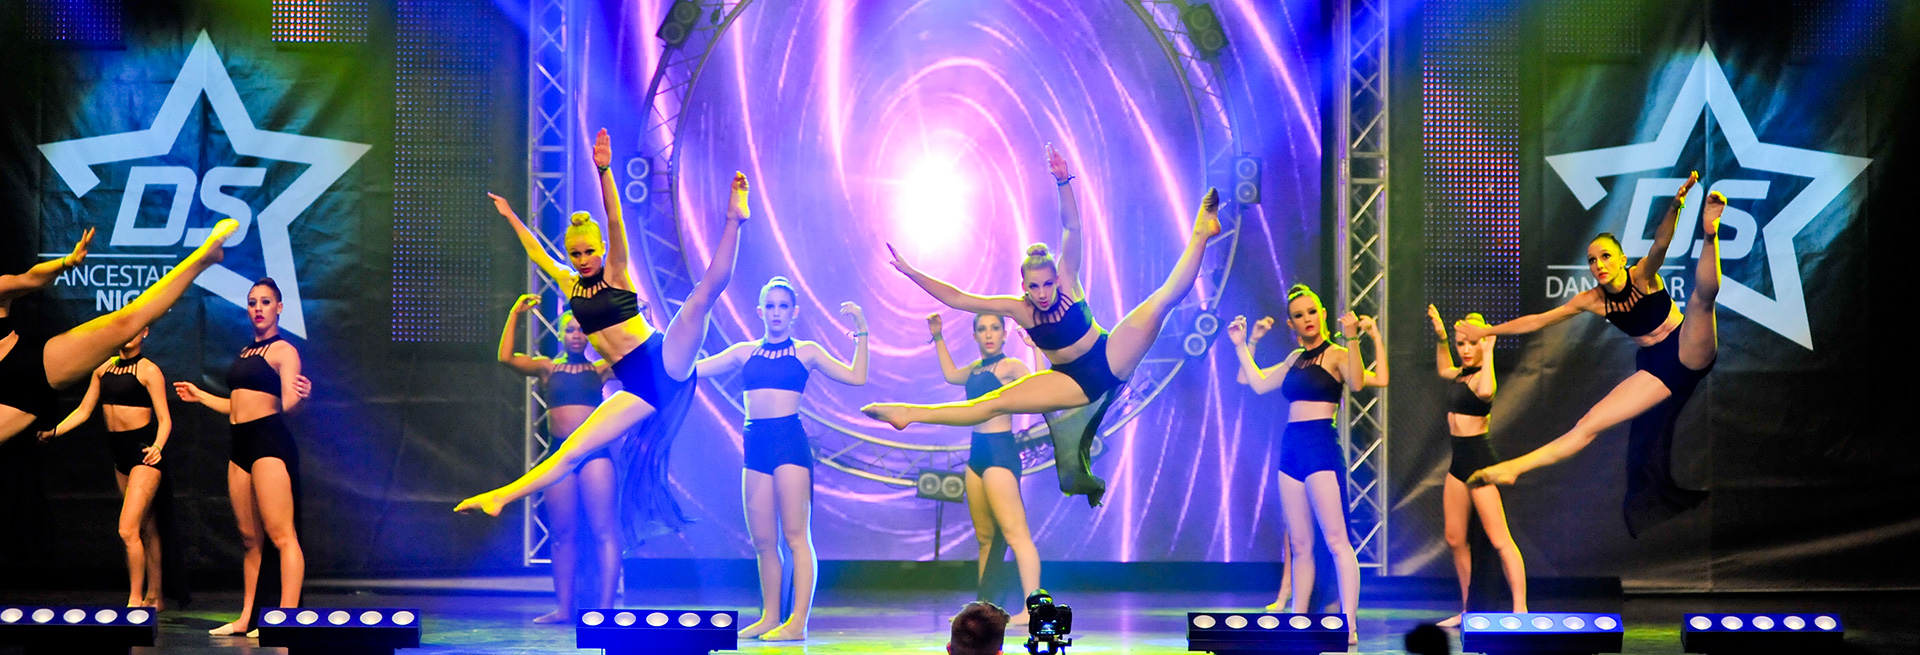 DanceStar World Finals 2019 22. - 26. May 2019, Porec, Croatia